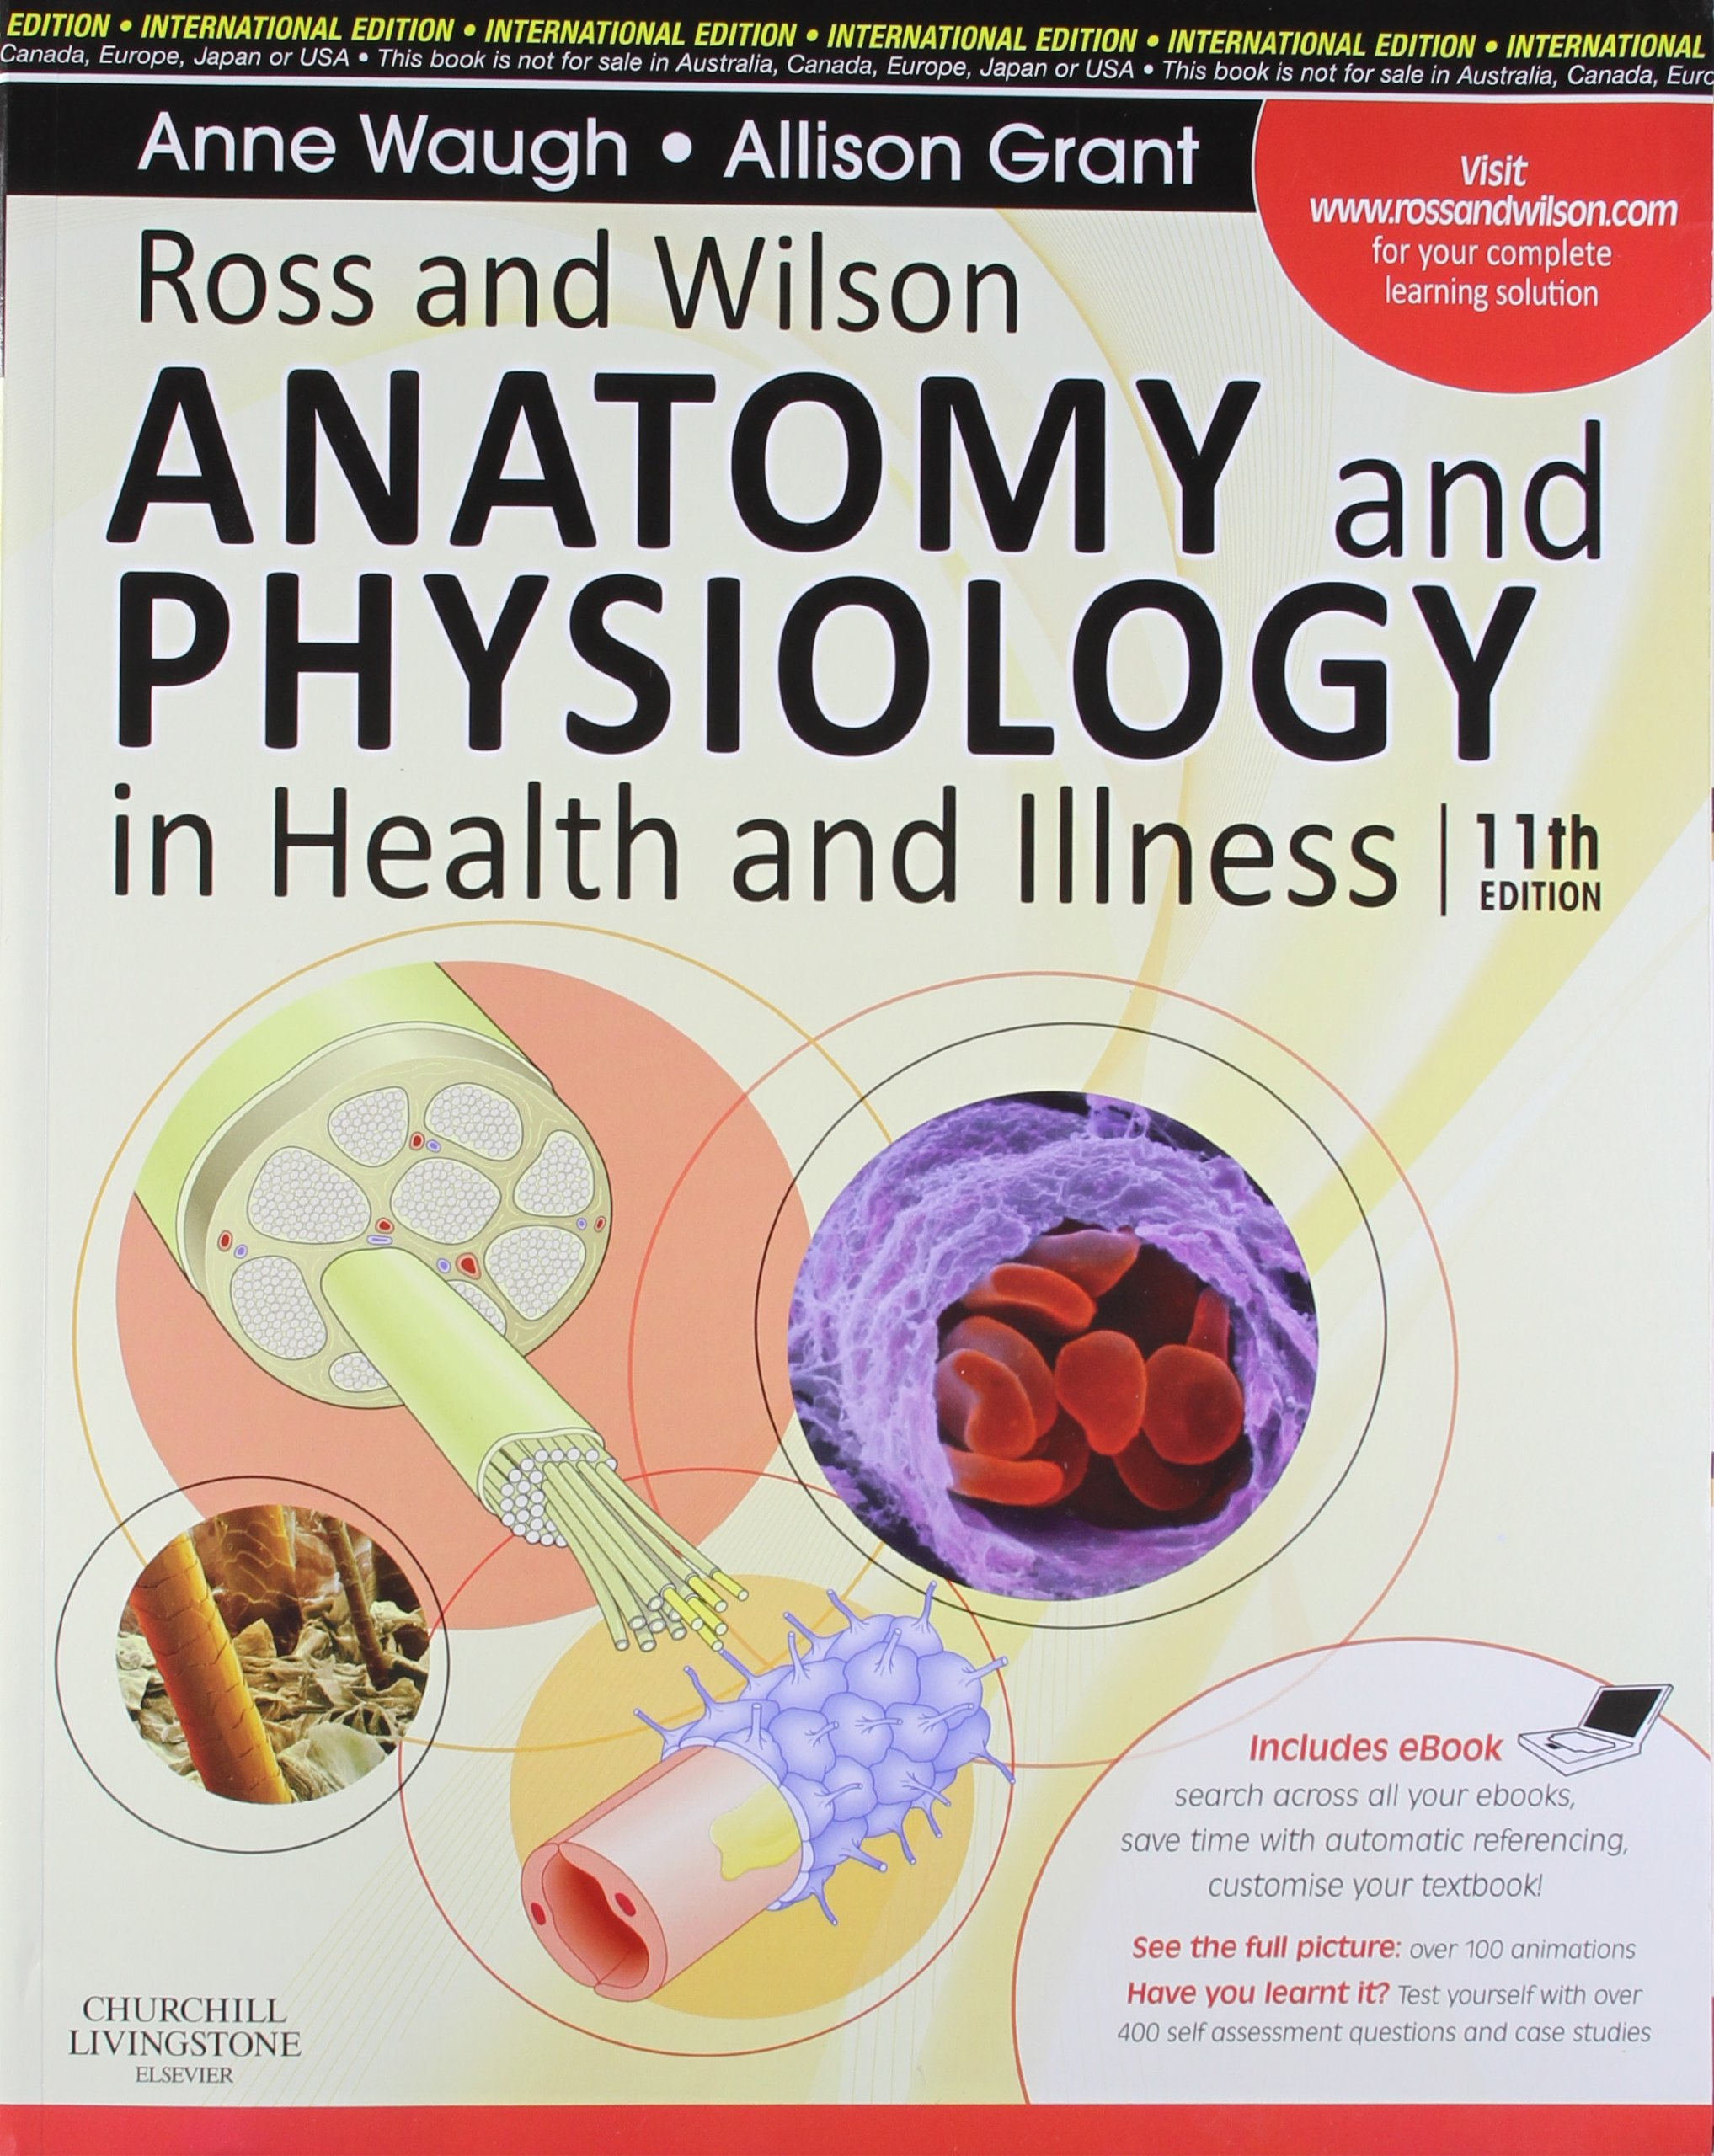 Buy Ross And Wilson Anatomy And Physiology In Health And Illness